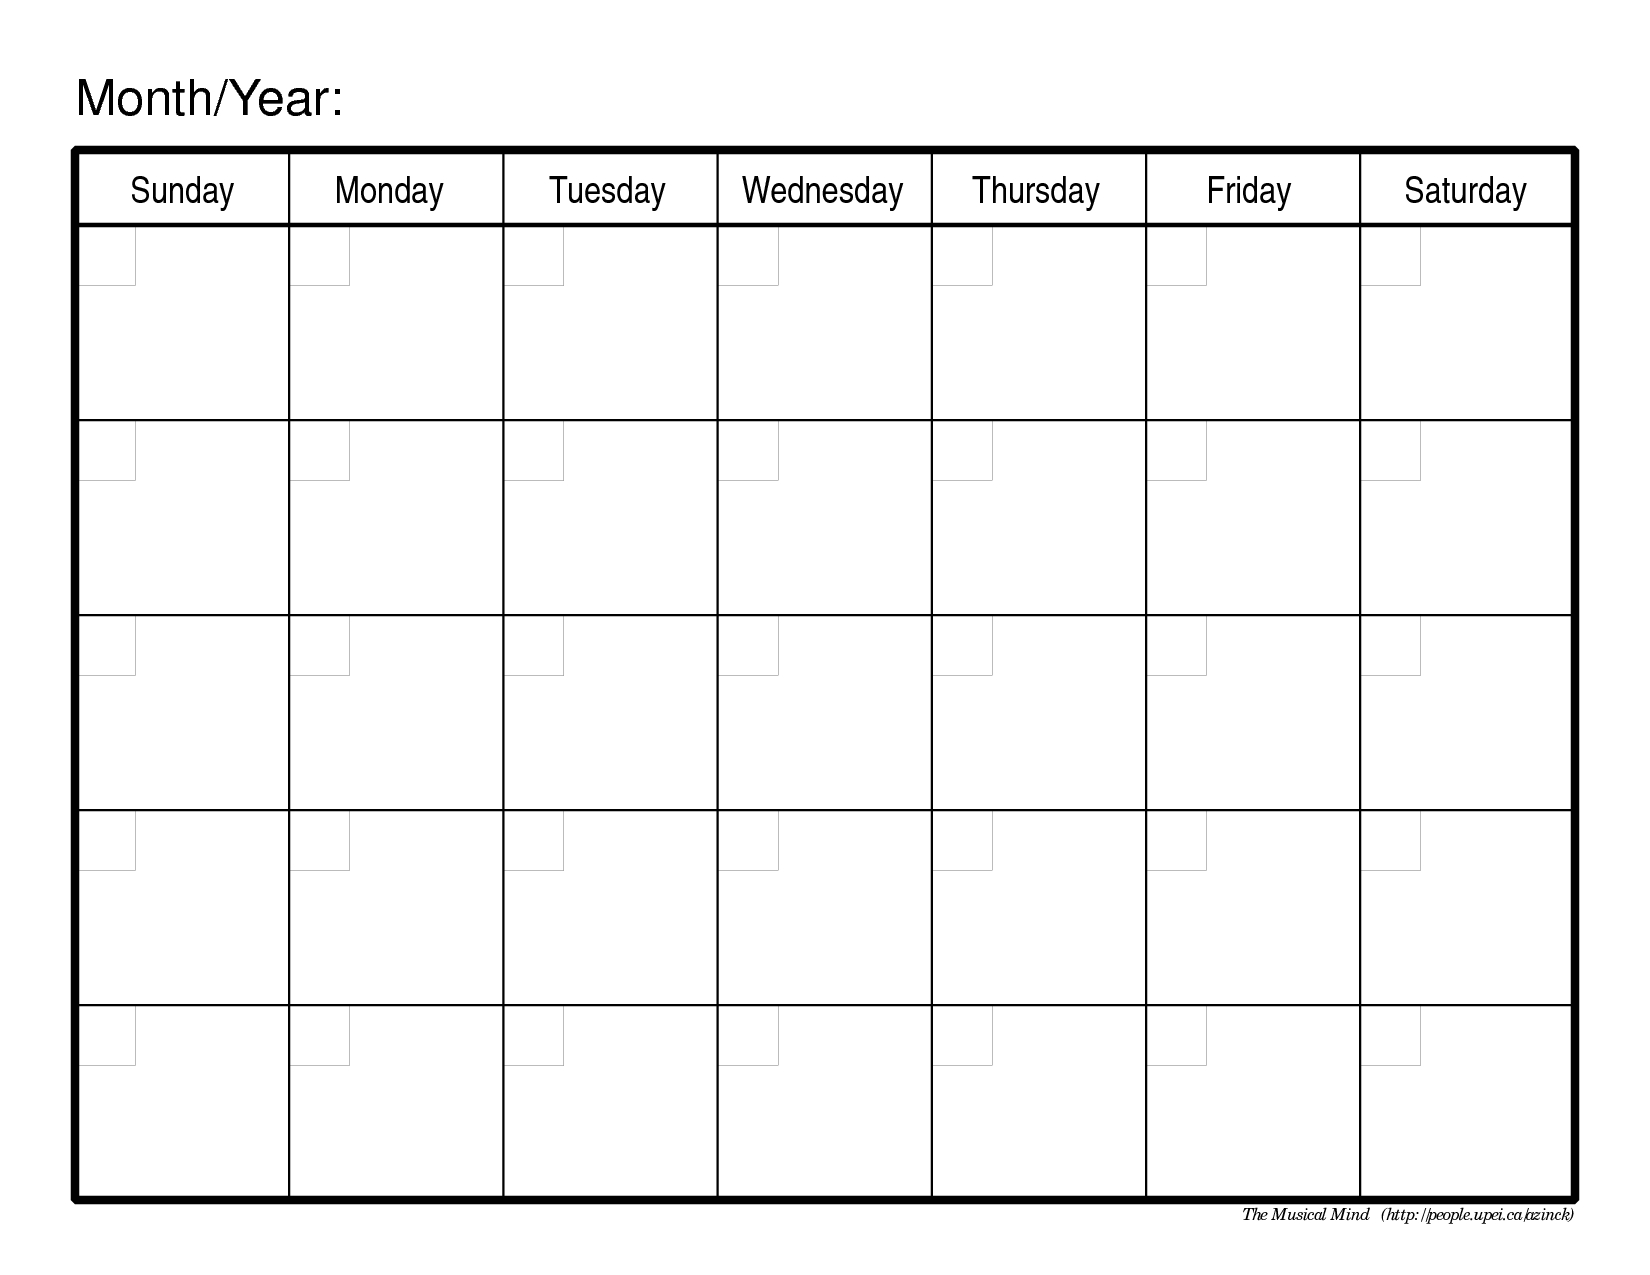 Calendar Templates Printable Free Fieldstation.co | Self Discovery pertaining to Blank Calendar To Fill In Free